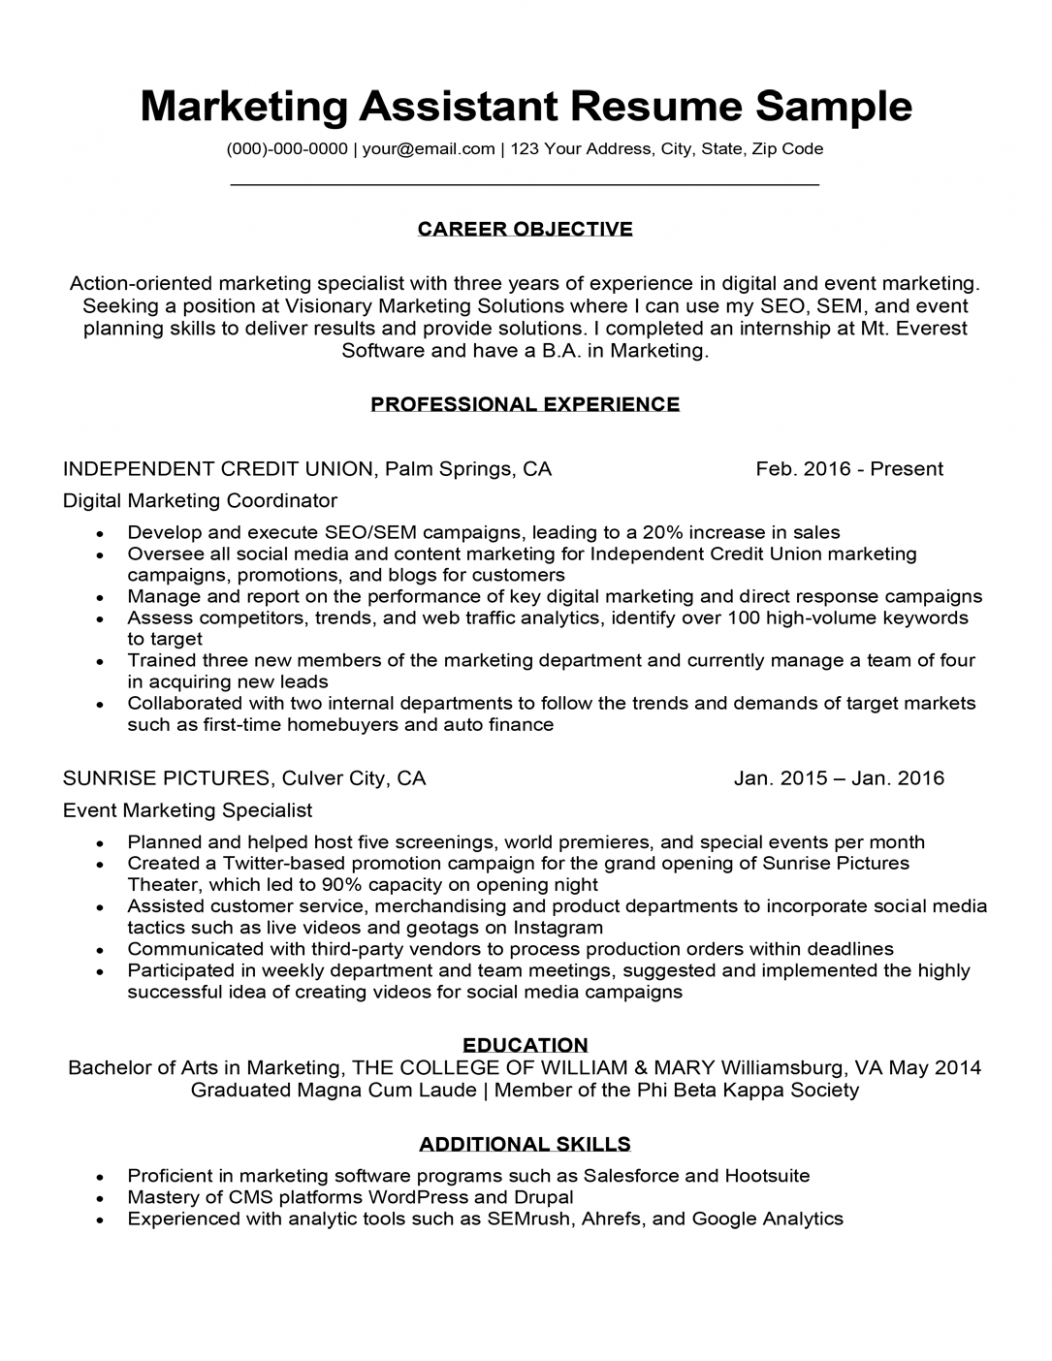 Resume Marketing Objectives Examples In 2021 Marketing Resume Resume Objective Statement Resume